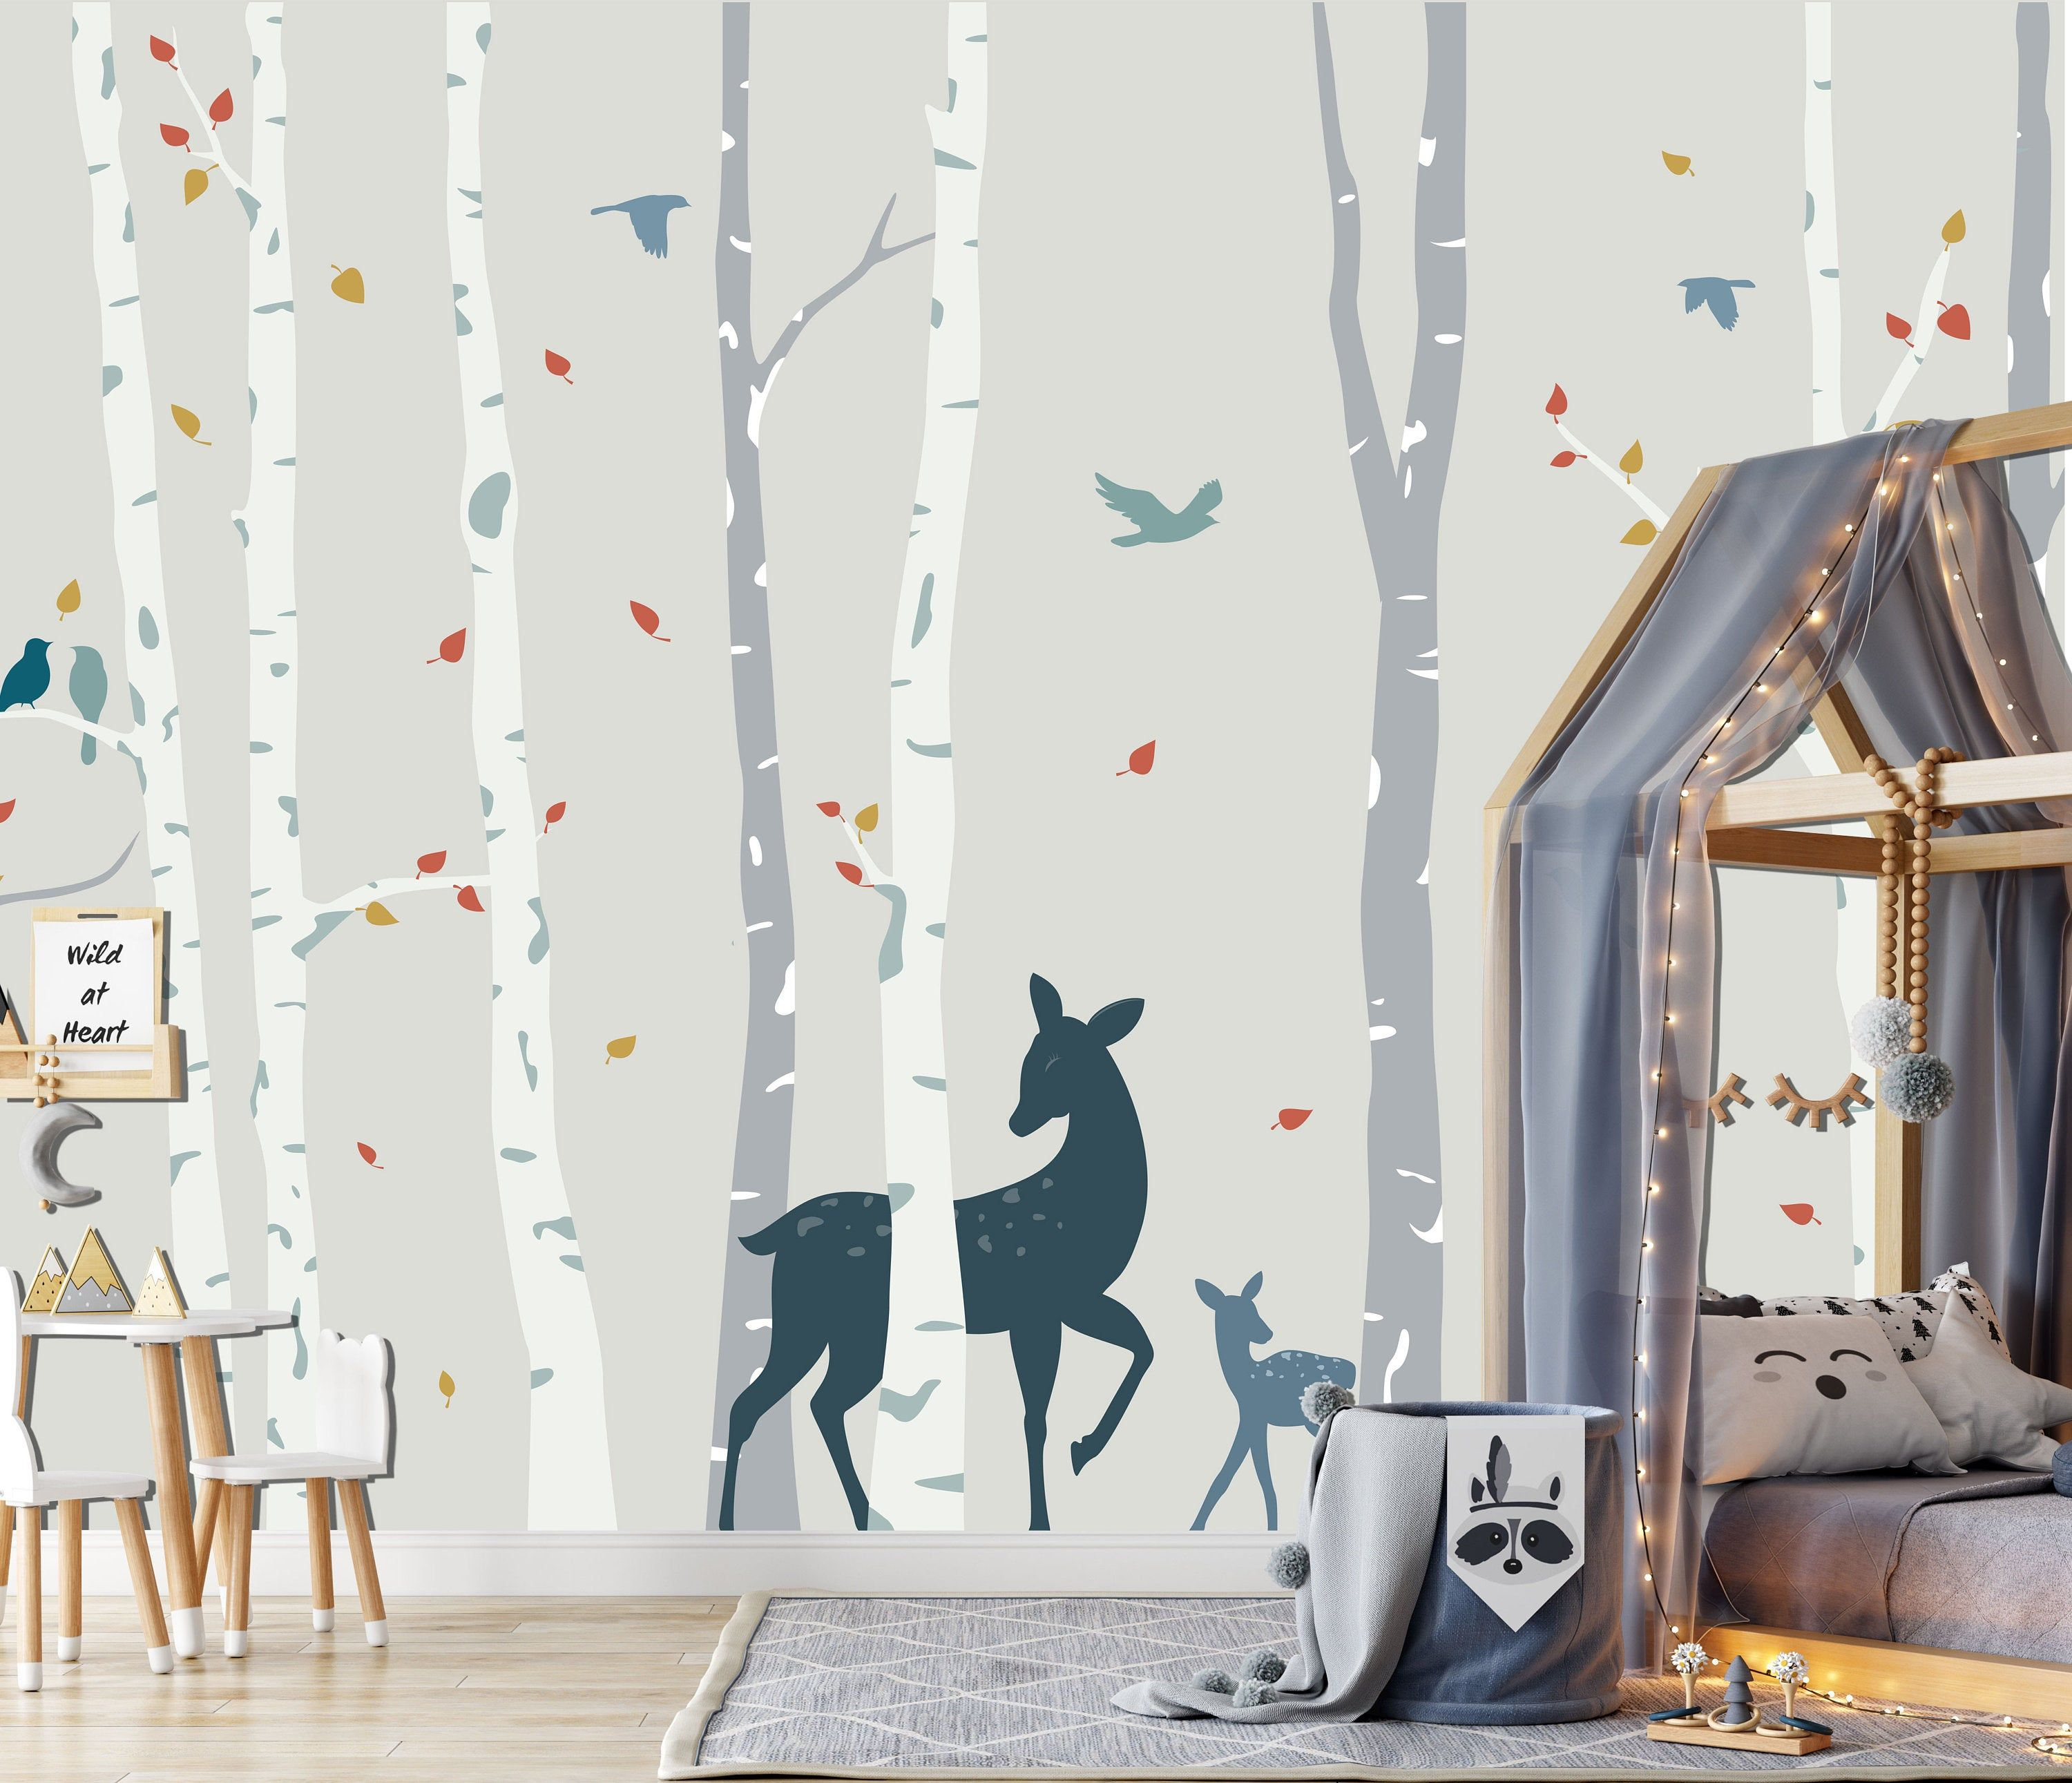 Birch Forest In Soft Colors Wall Mural Kids Woodland Scene Etsy In 2021 Wall Colors Kids Wall Murals Wallpaper Walls Decor